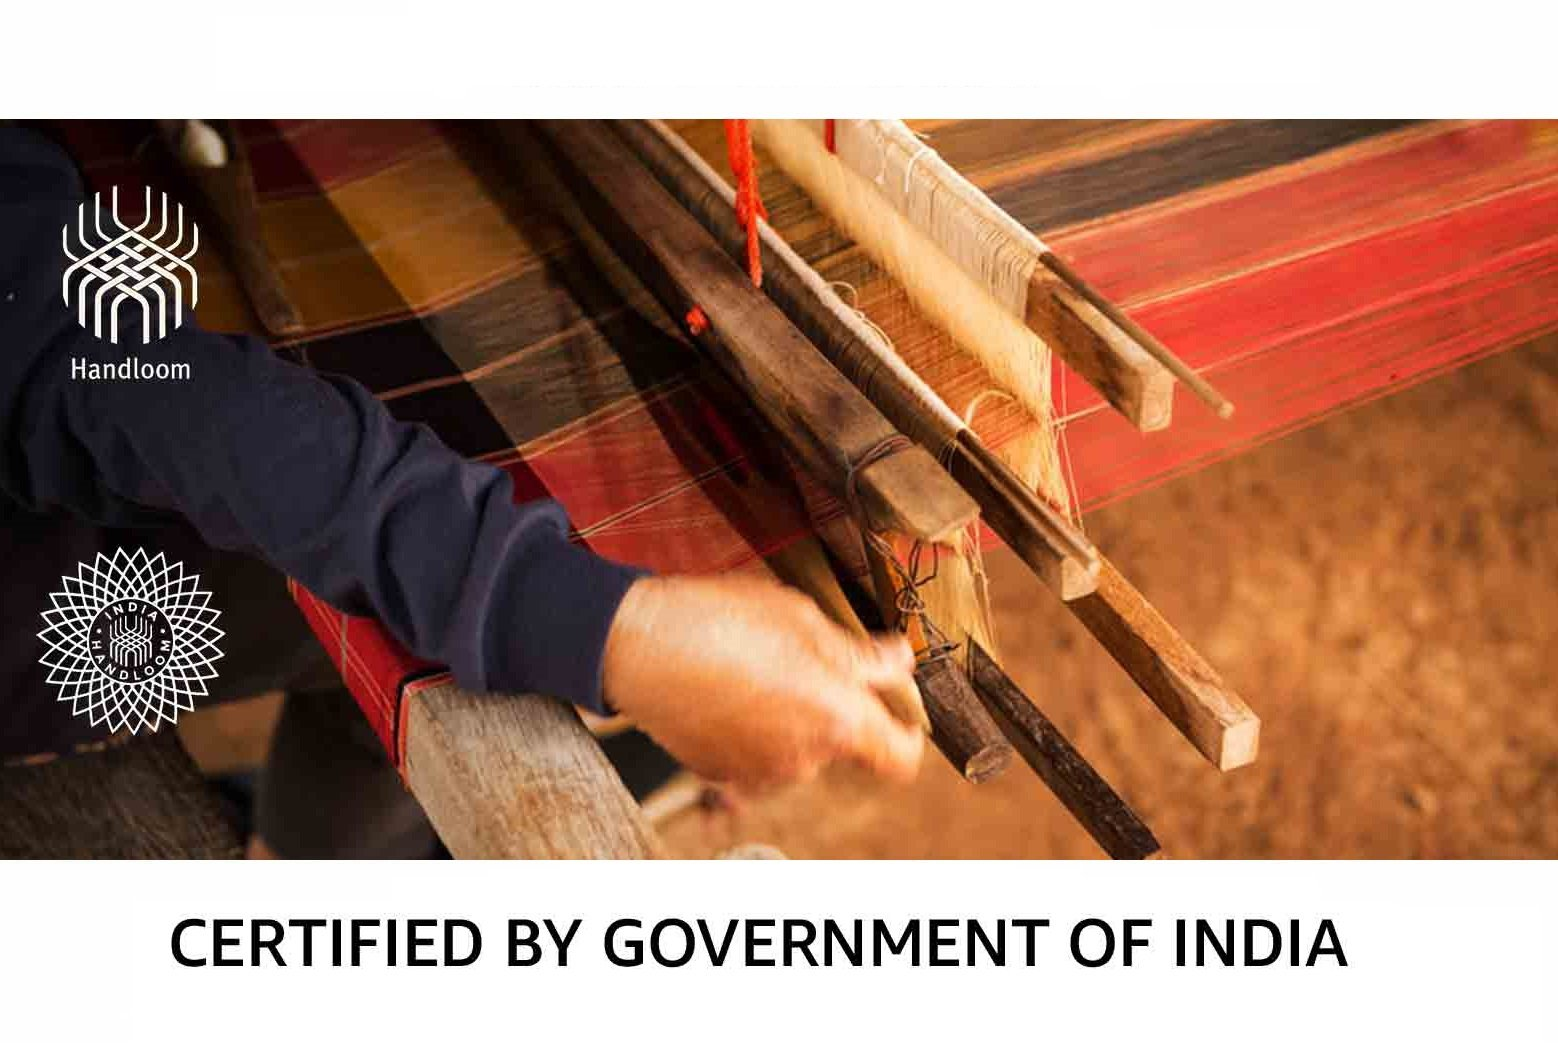 Certified by Government of India